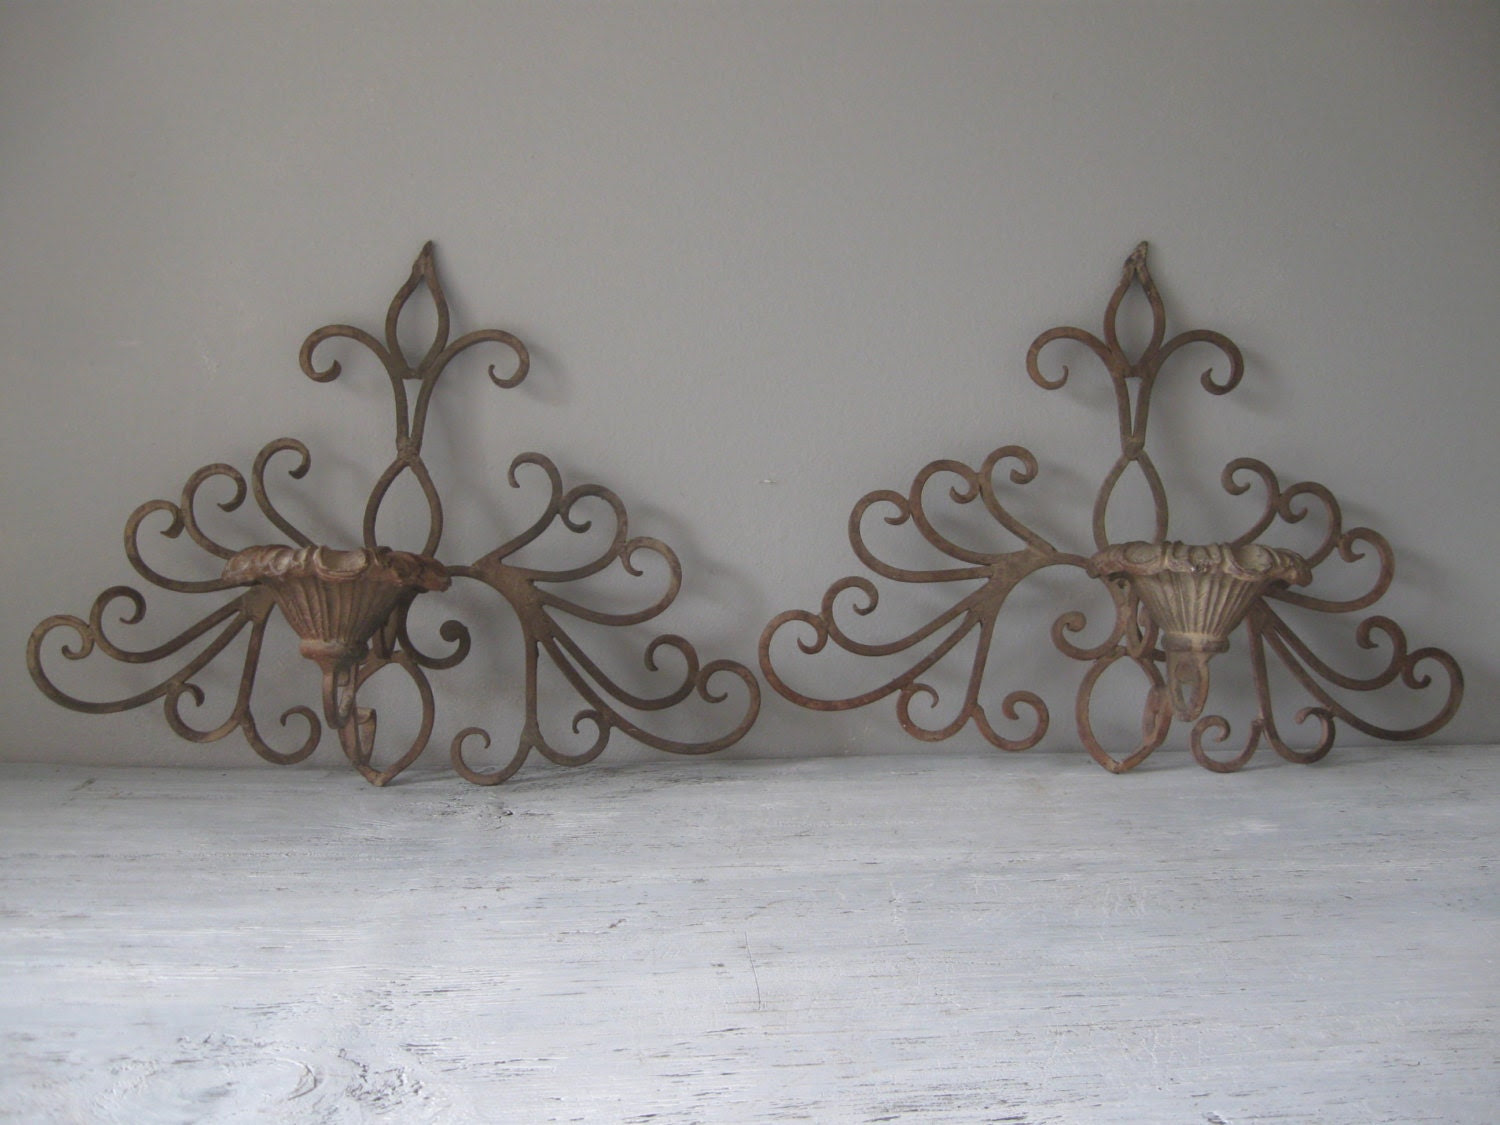 Vintage Wrought Iron Candle Sconces / Wall Decor by thefeedstore